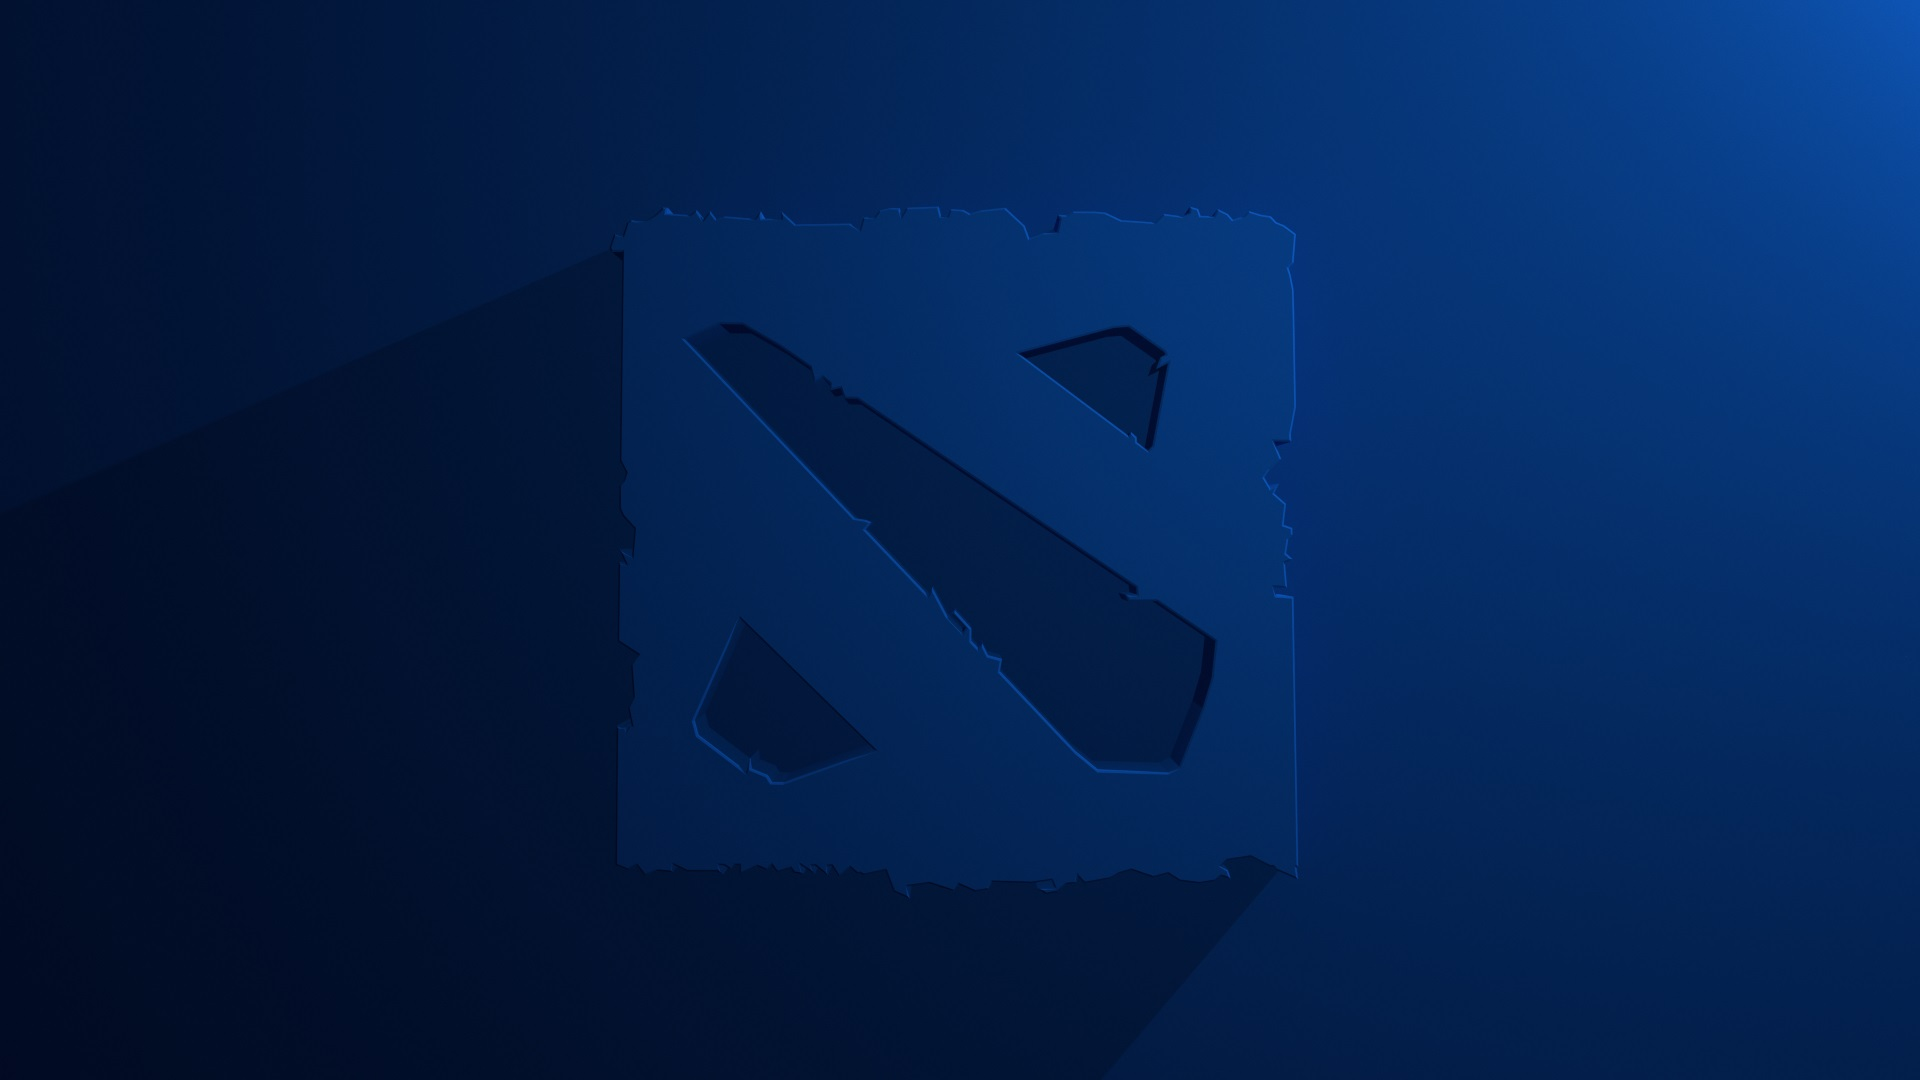 Dota 2 logo blue background, desktop photos